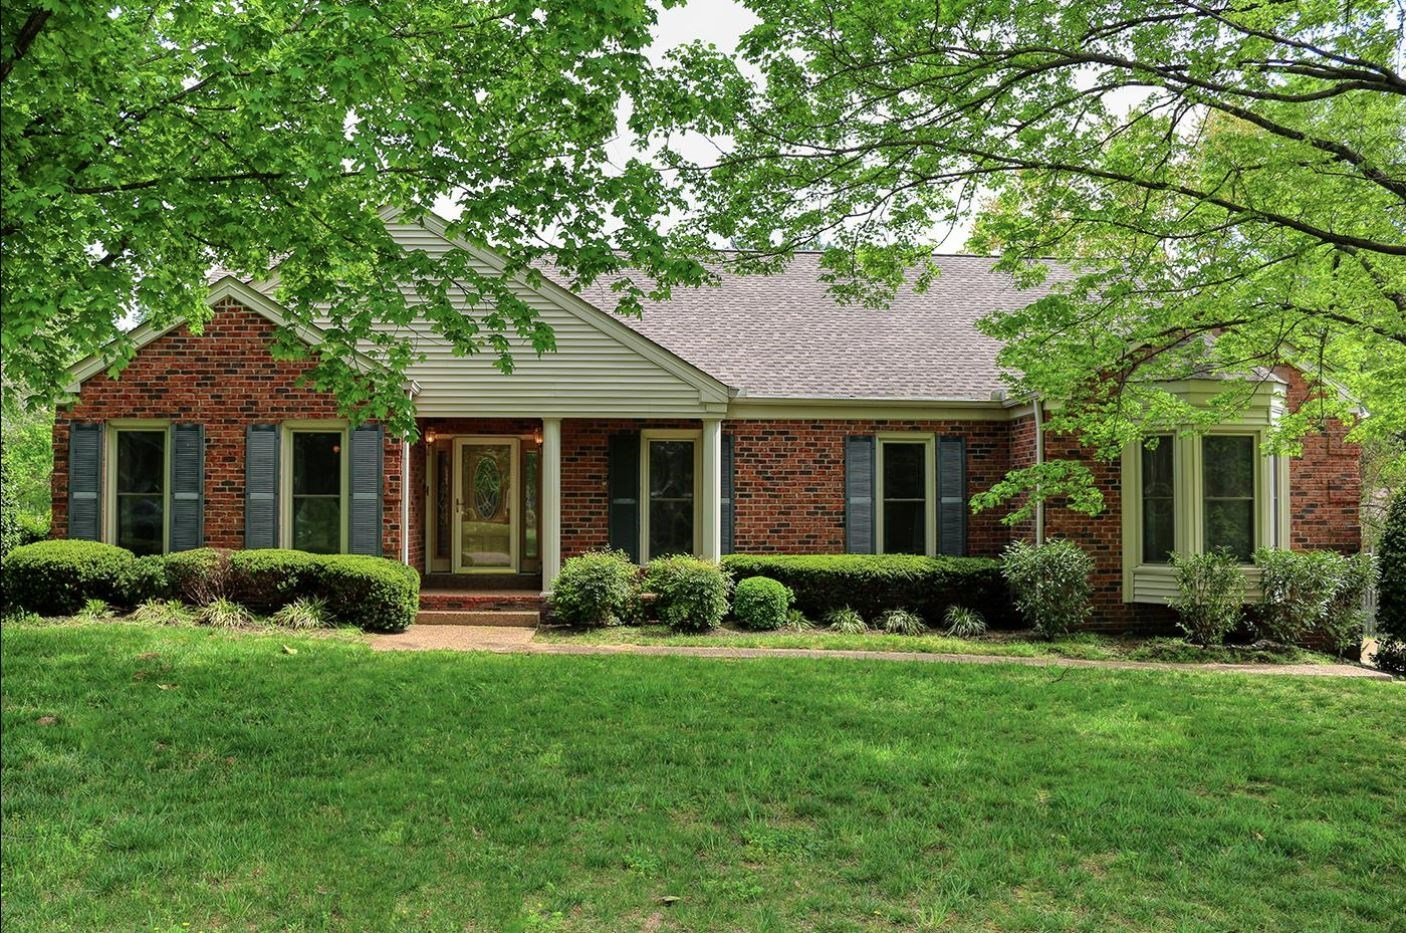 Look Quick!! 3 BR/2 Bath Located in Brentwood, Davidson Tenn